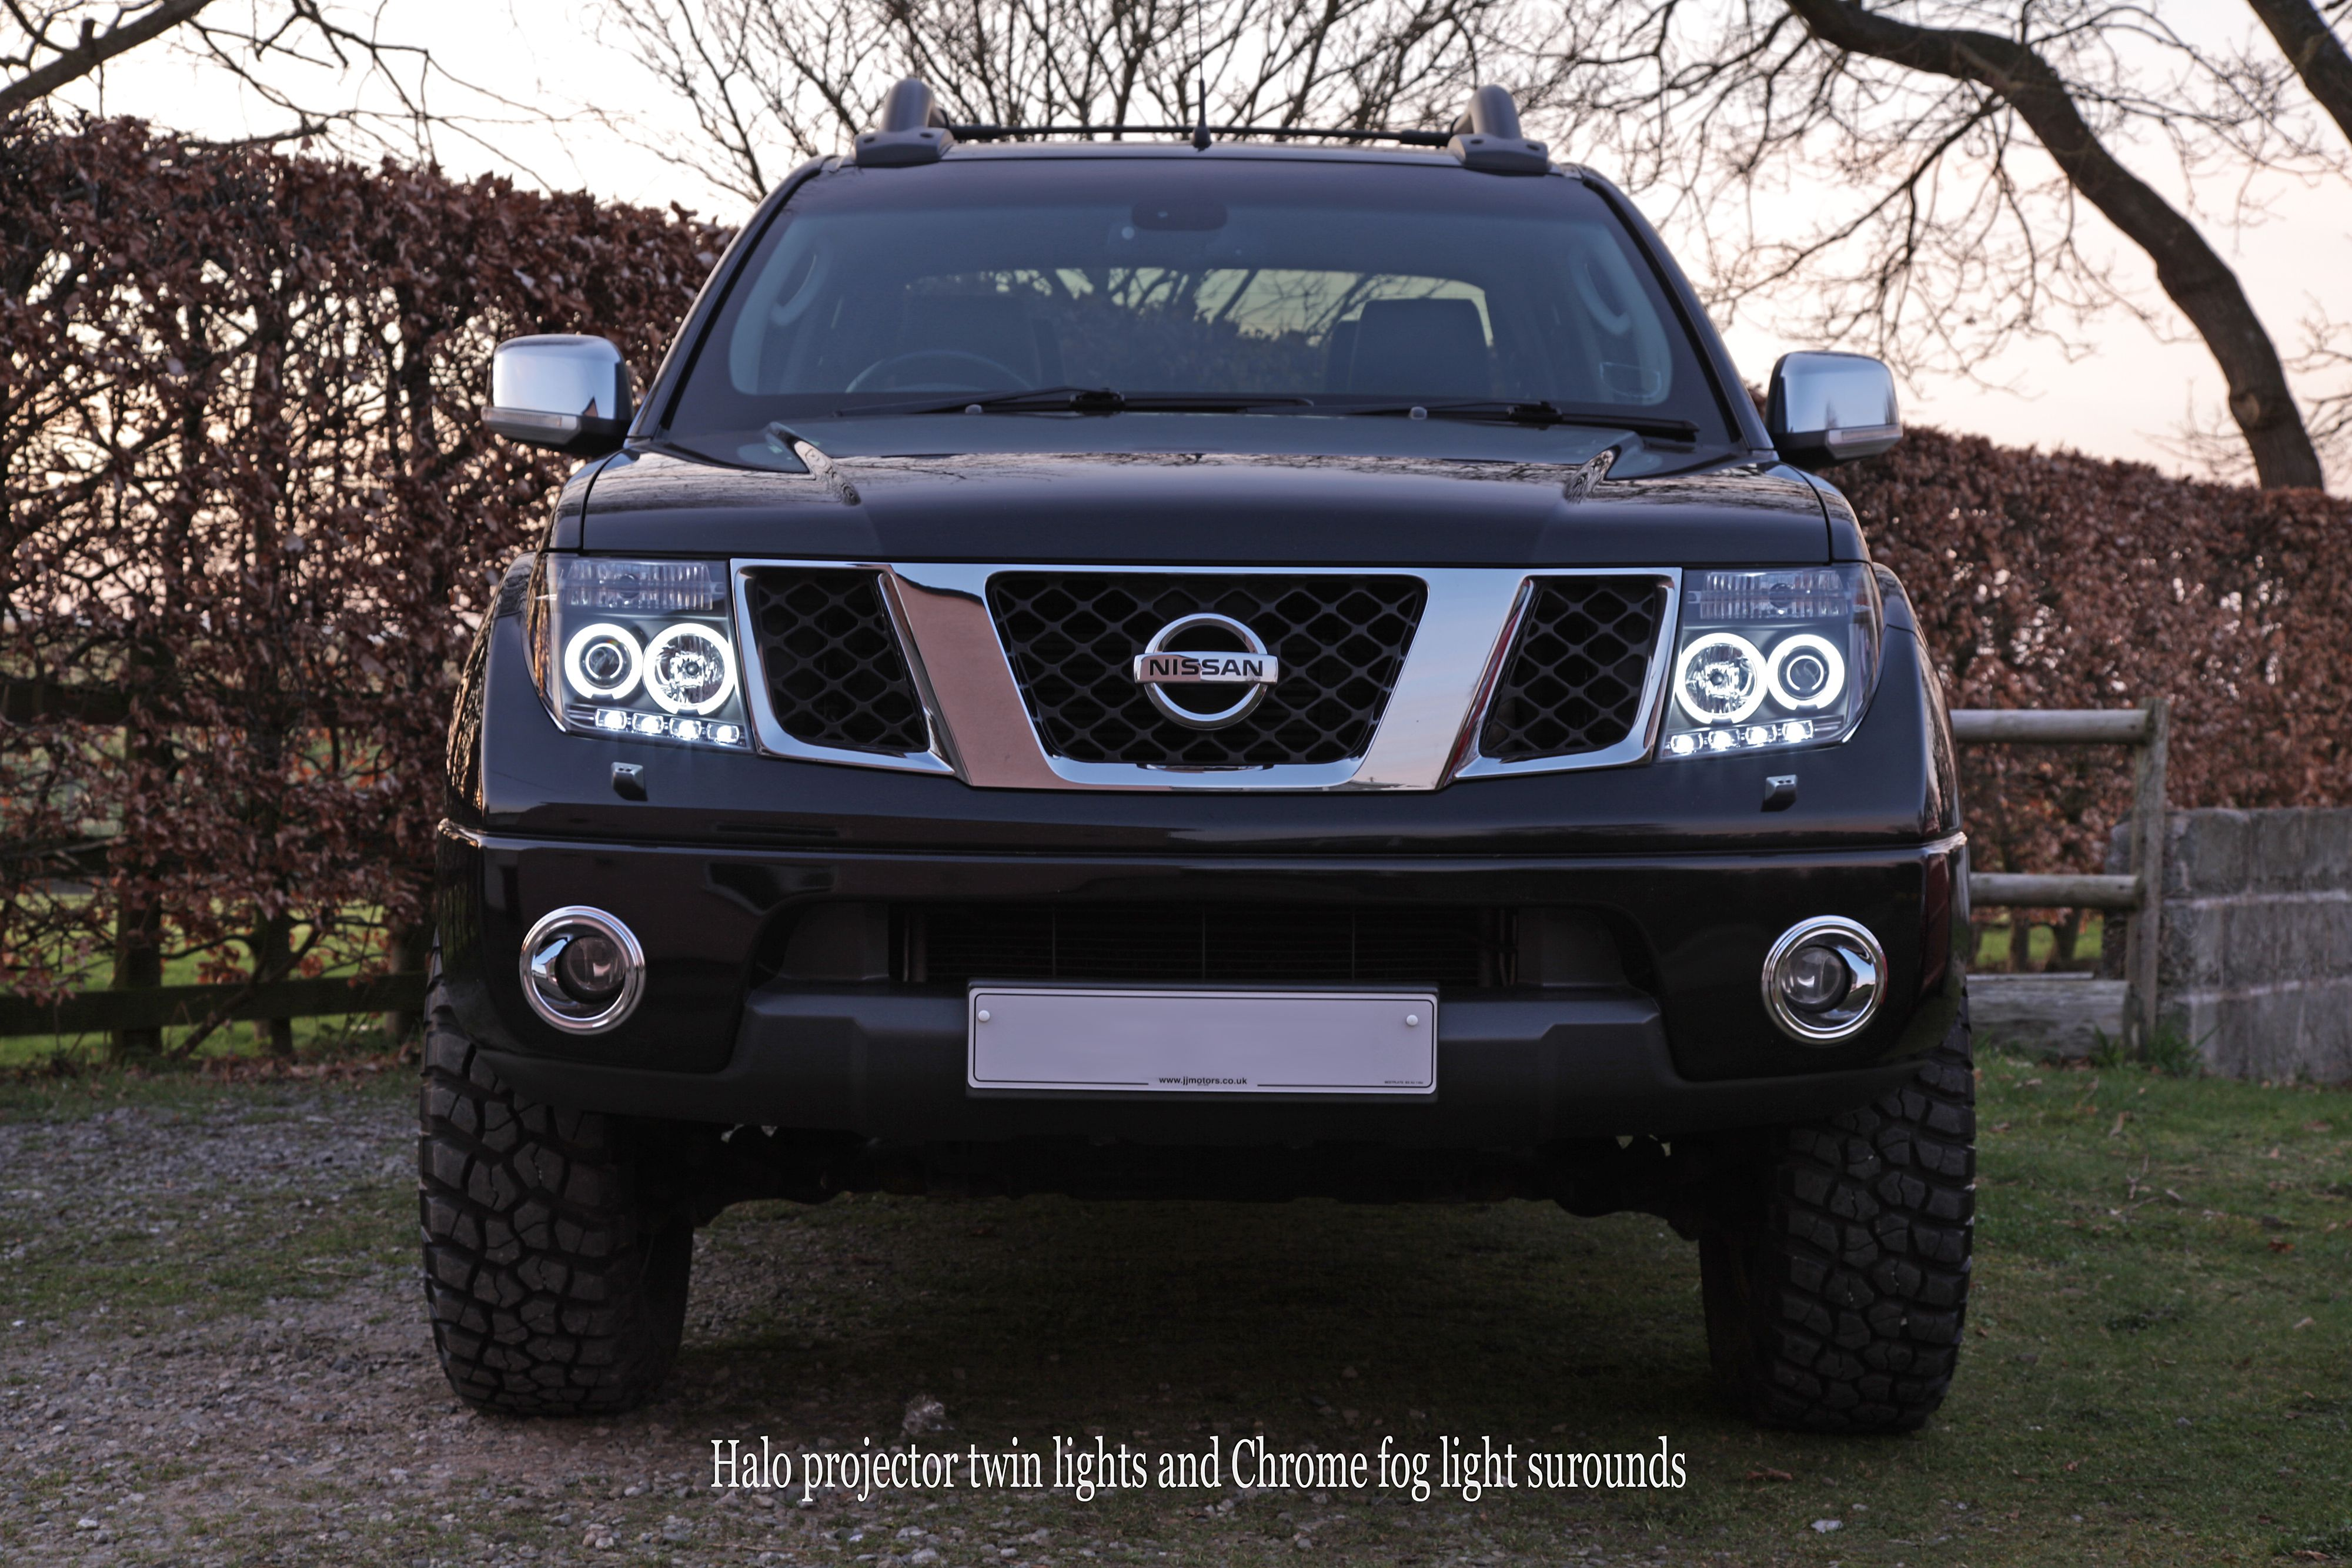 Twin Halo Projector Headlights On My Nissan Navara Frontier Nissan Navara Nissan Trucks Nissan Navara D40